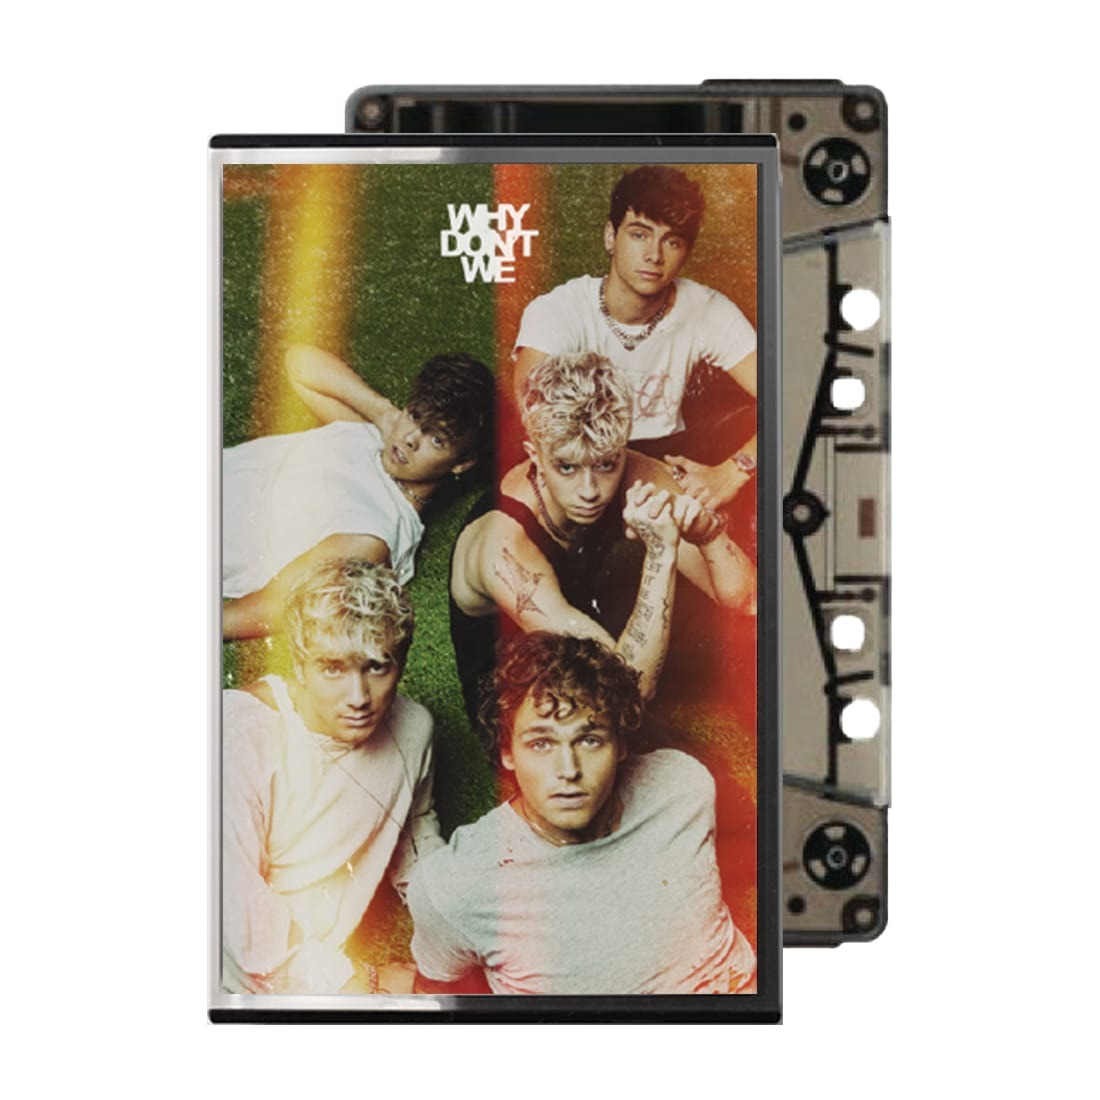 The Good Times And The Bad Ones Cassette (Smoky Tint) product image (1)